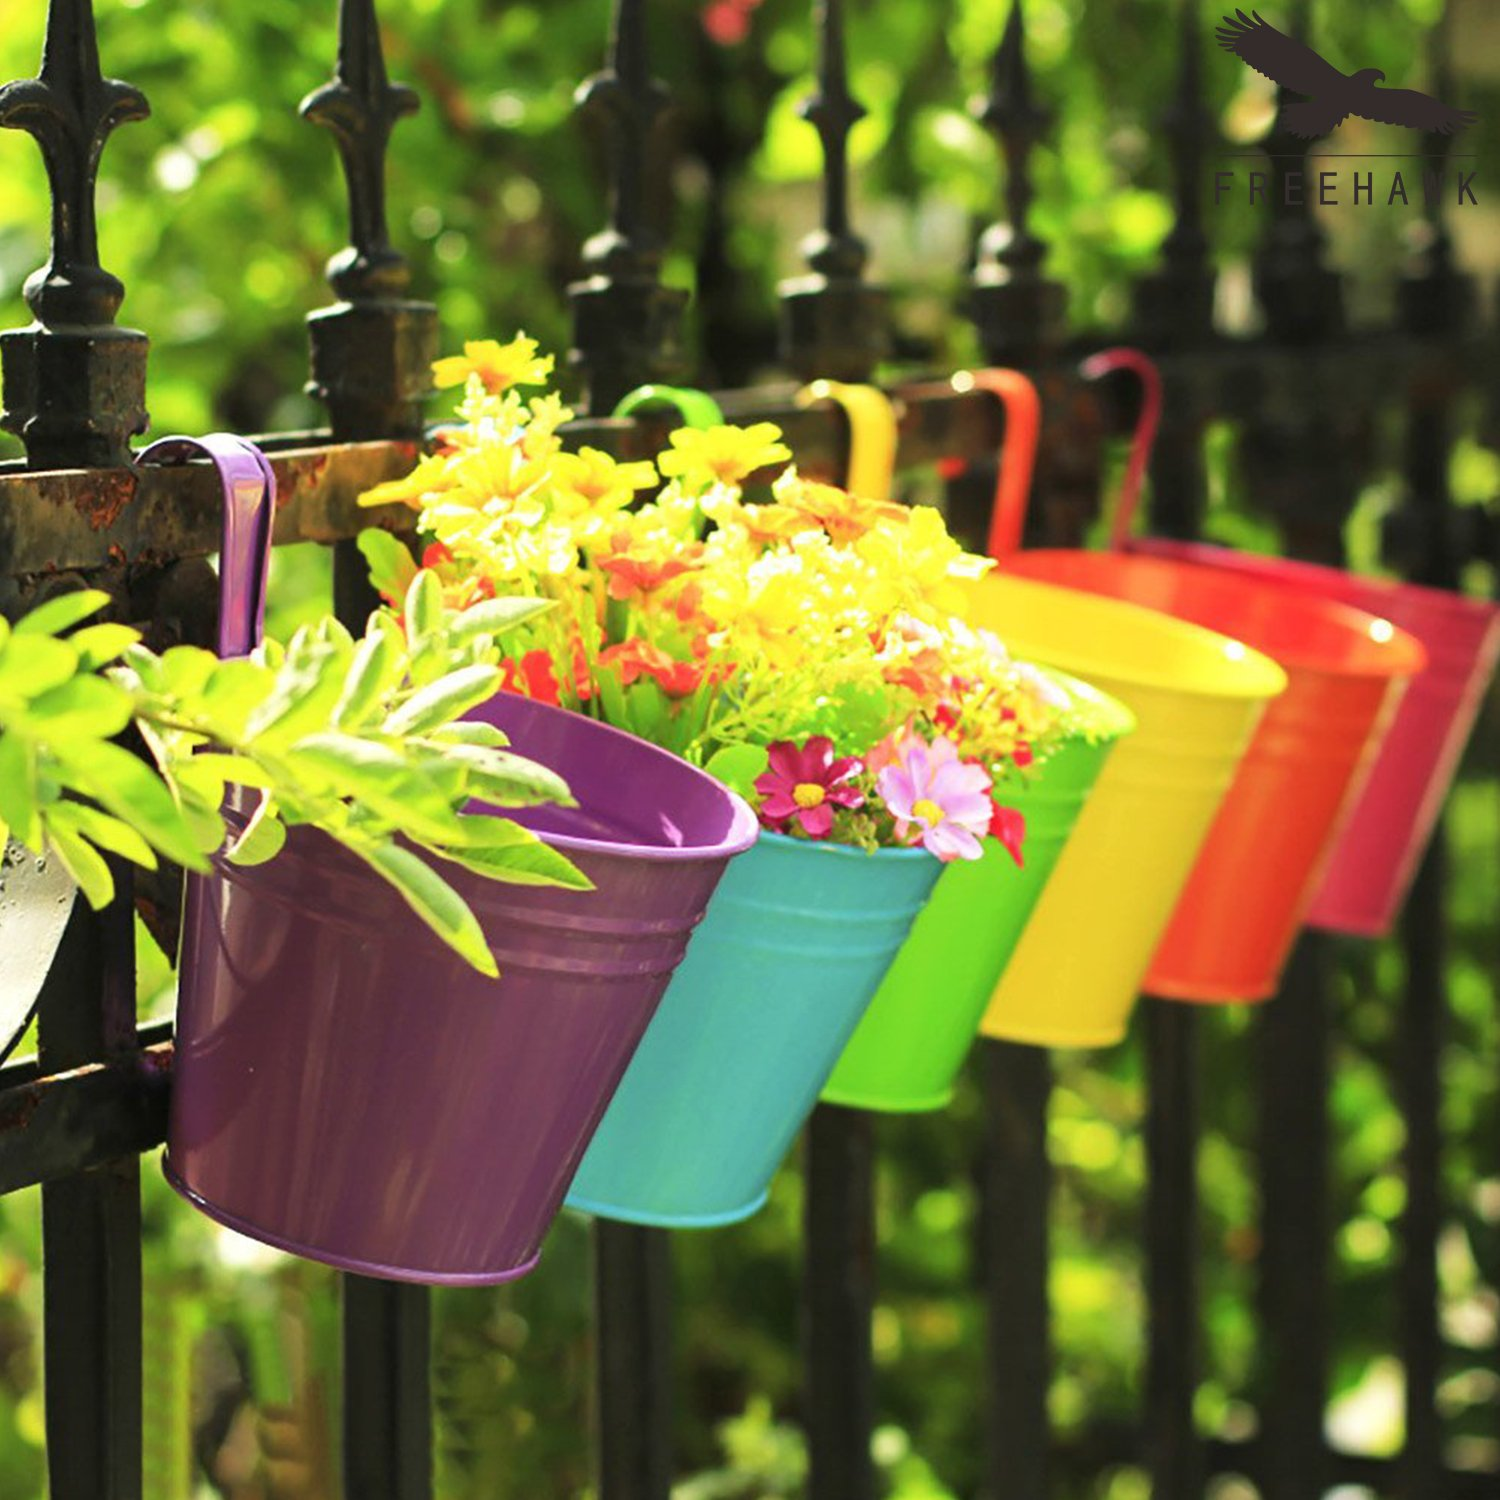 Amazon.com: Hanging Flower Pots,Out Topper Balcony Garden Plant ...